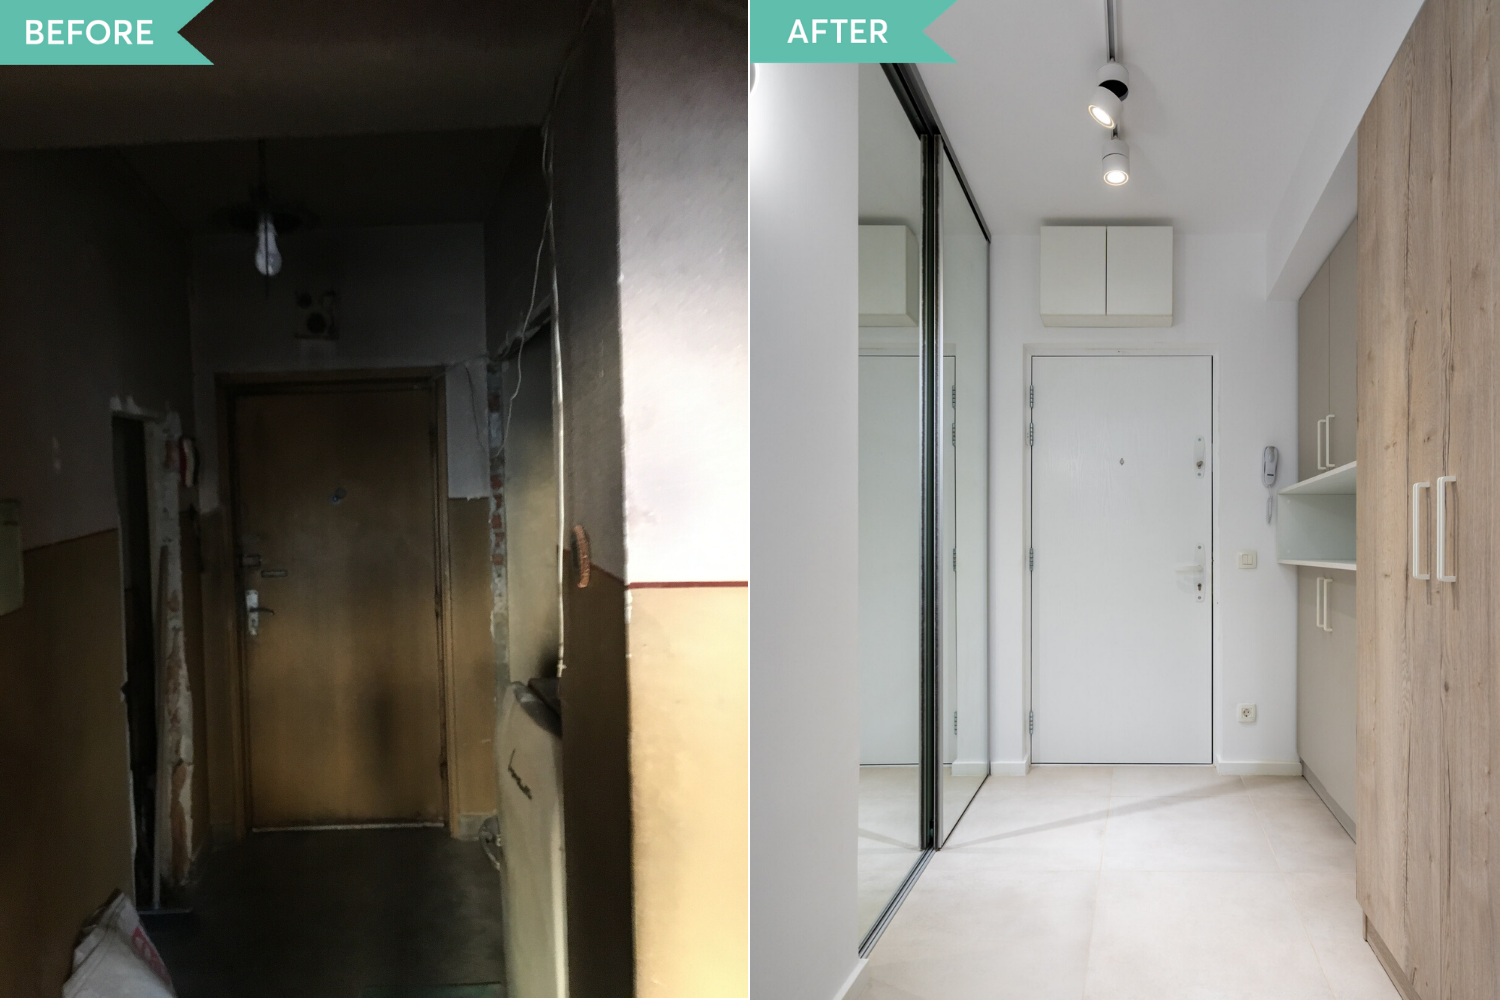 Renovare hol apartament vechi - before and after - arh. Cristiana Zgripcea